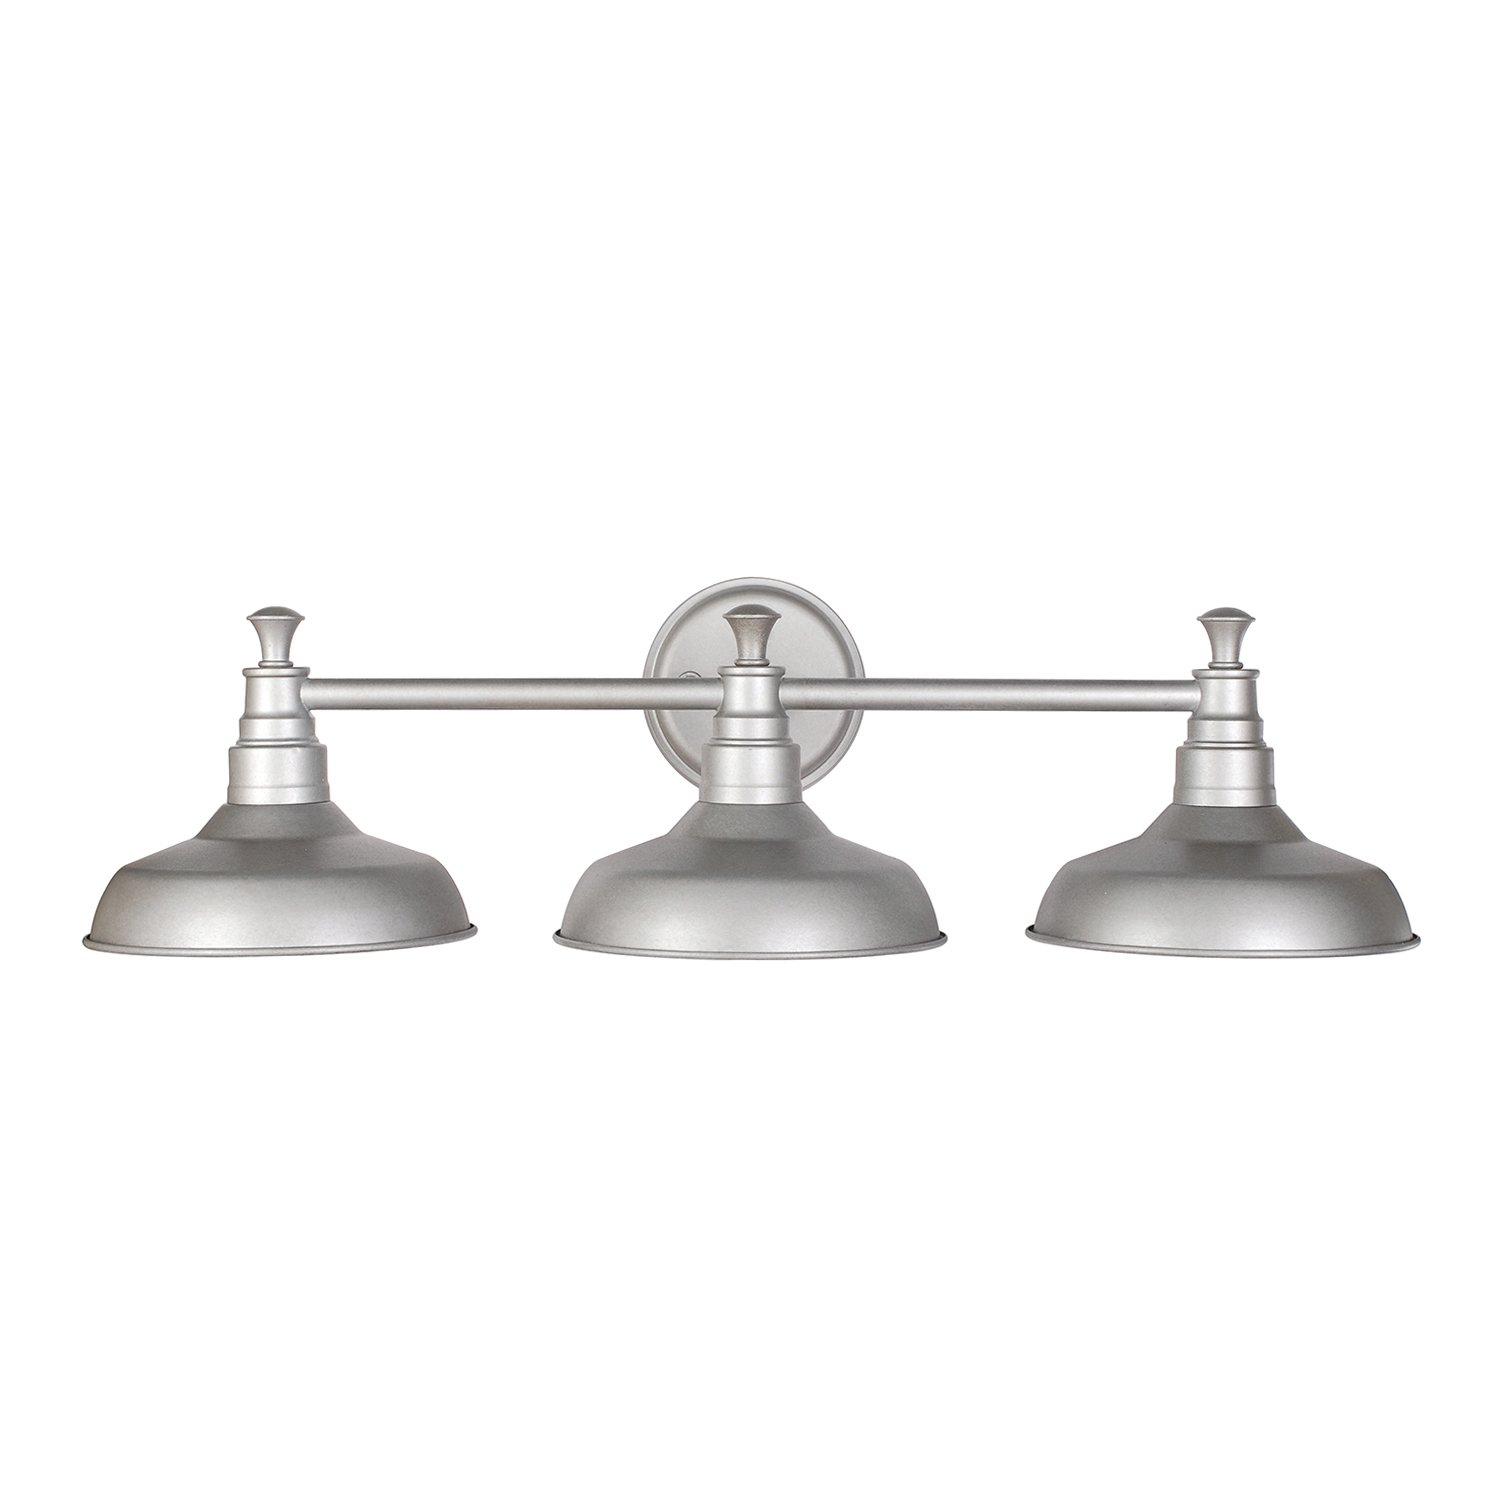 Bathroom vanity lights brushed nickel - Design House 520312 Kimball 3 Light Vanity Light Galvanized